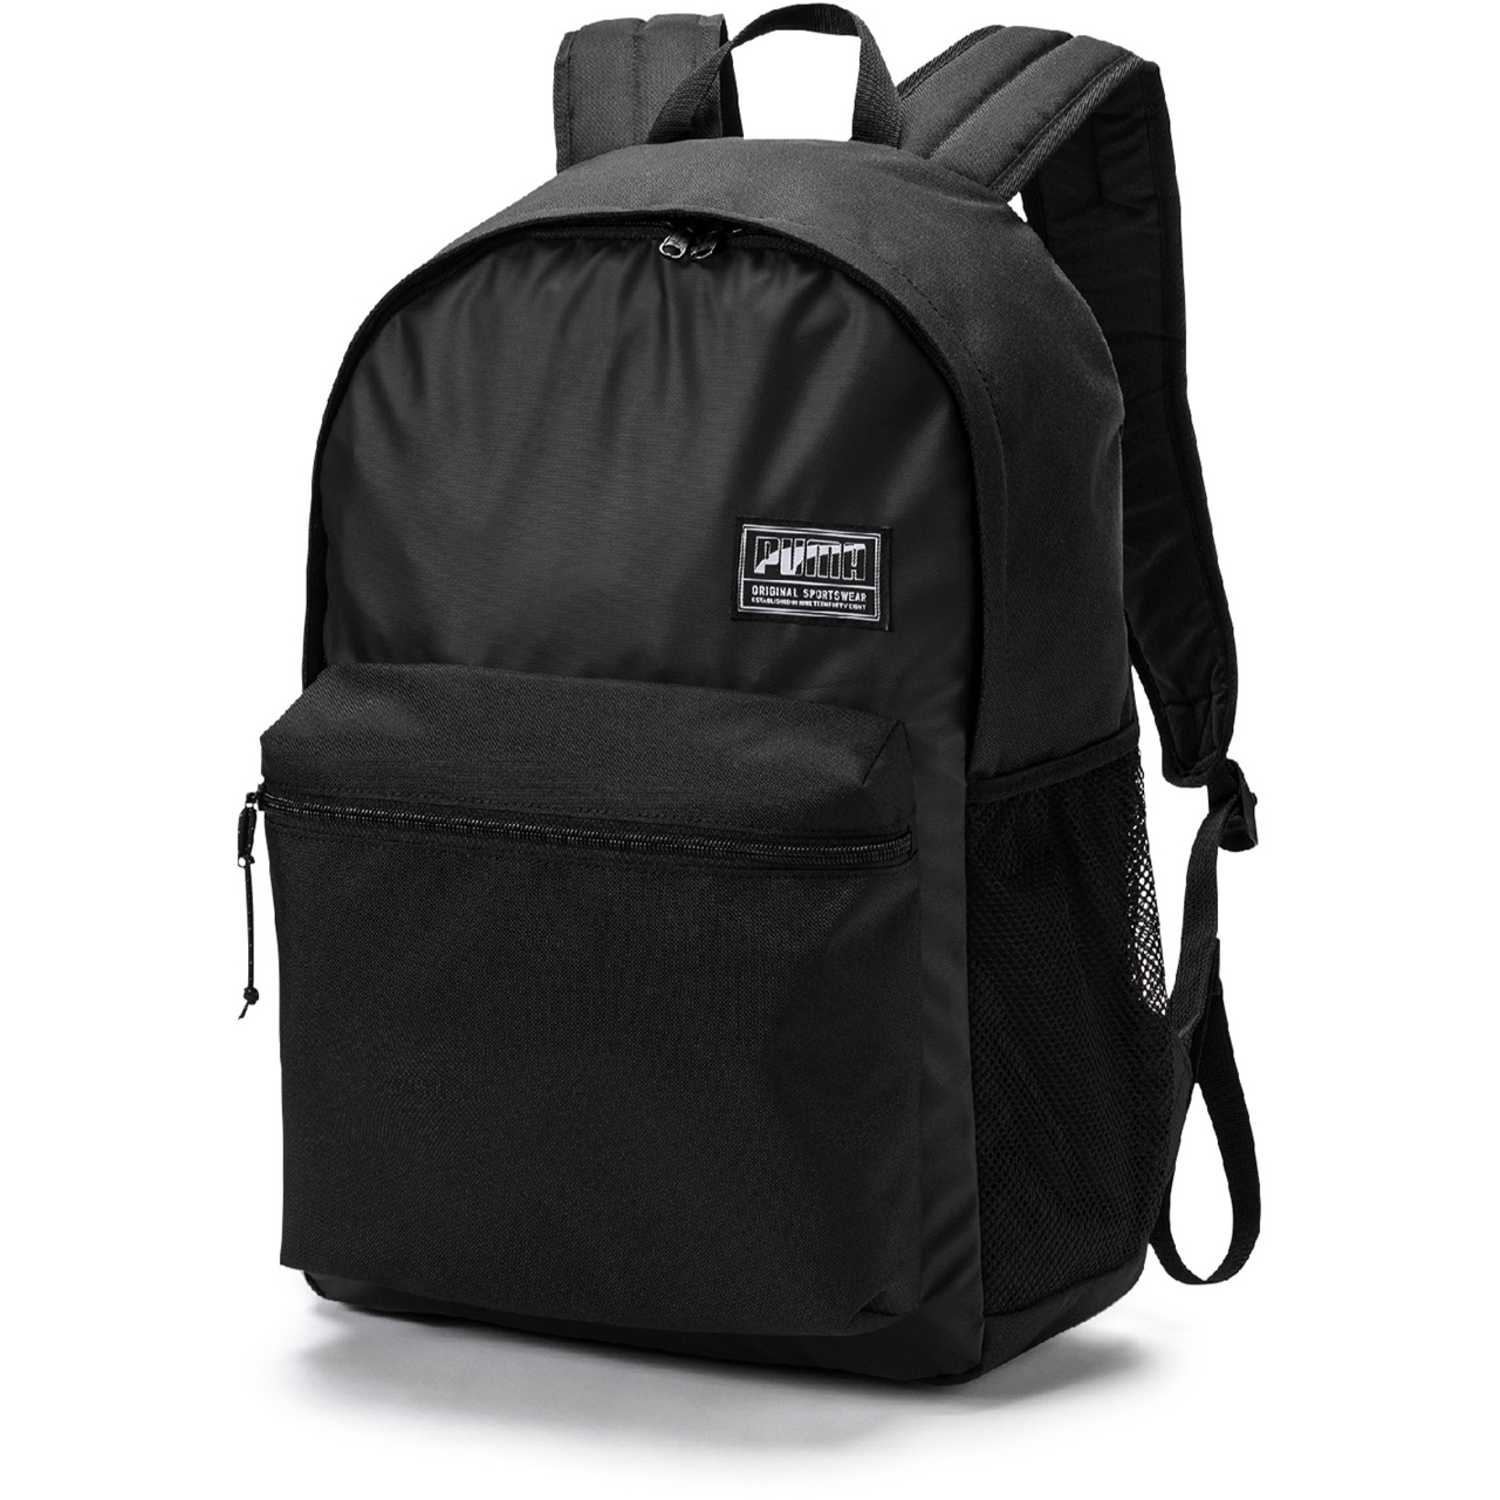 Puma puma academy backpack Negro / blanco Mochilas Multipropósitos